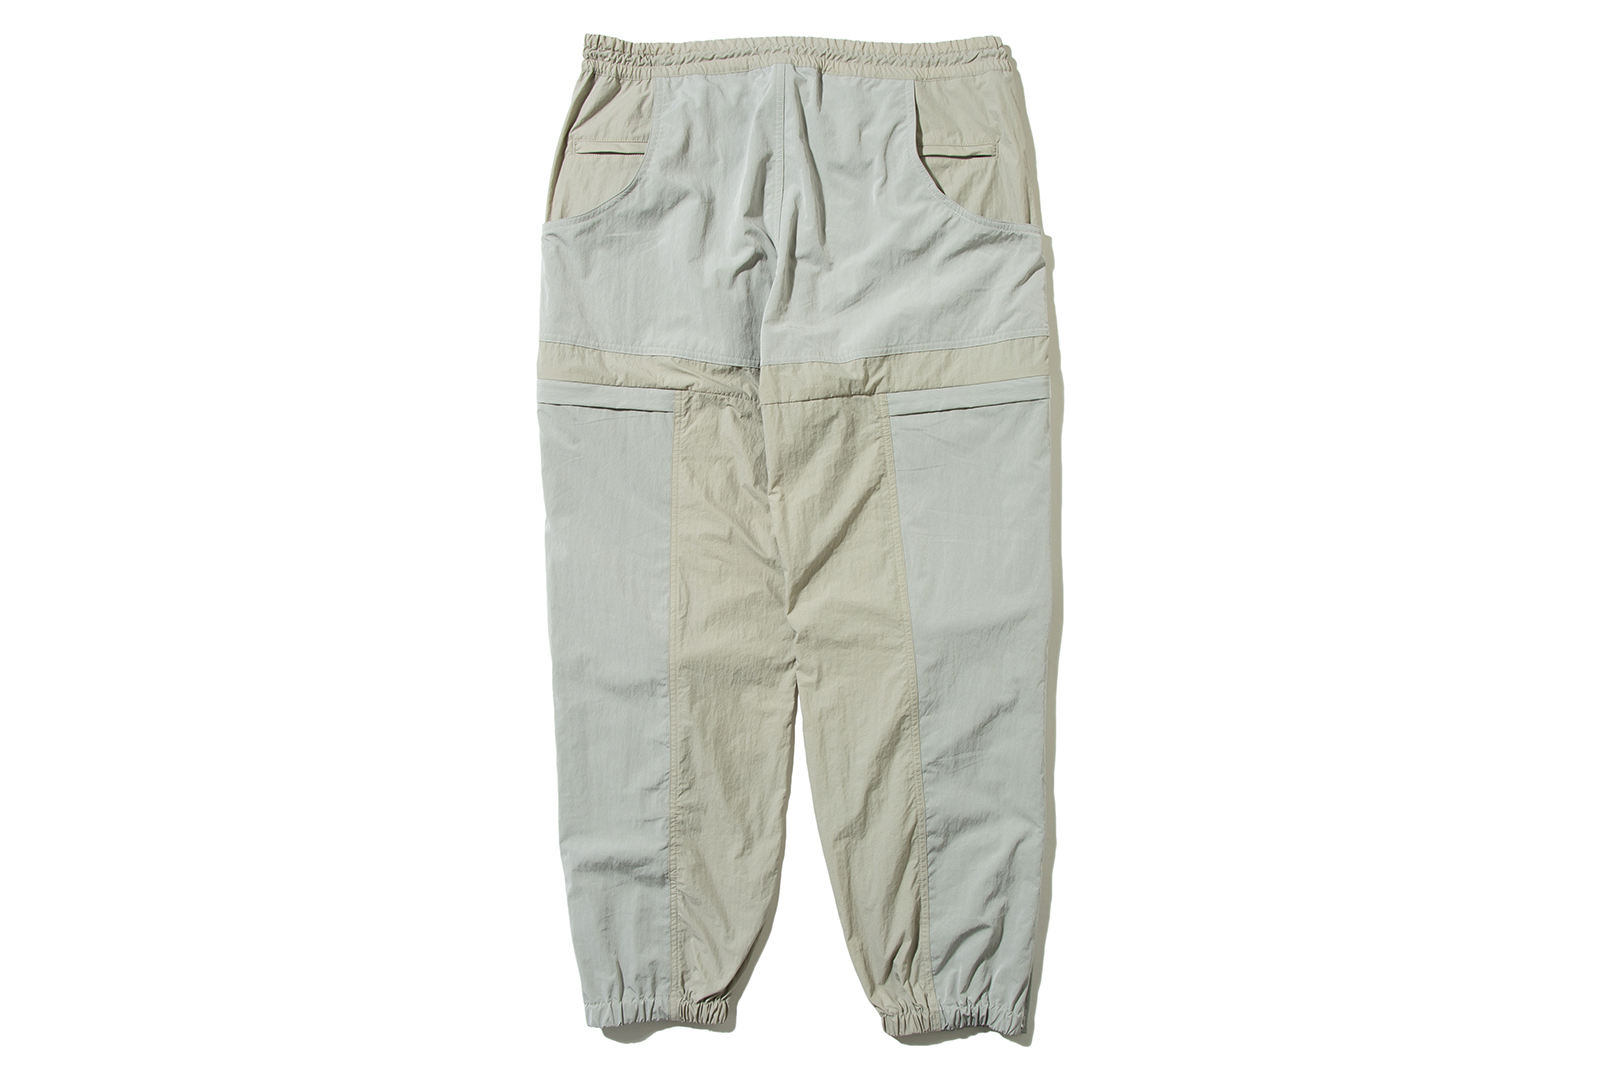 6-pocket-nylon-track-pant-sand_p1